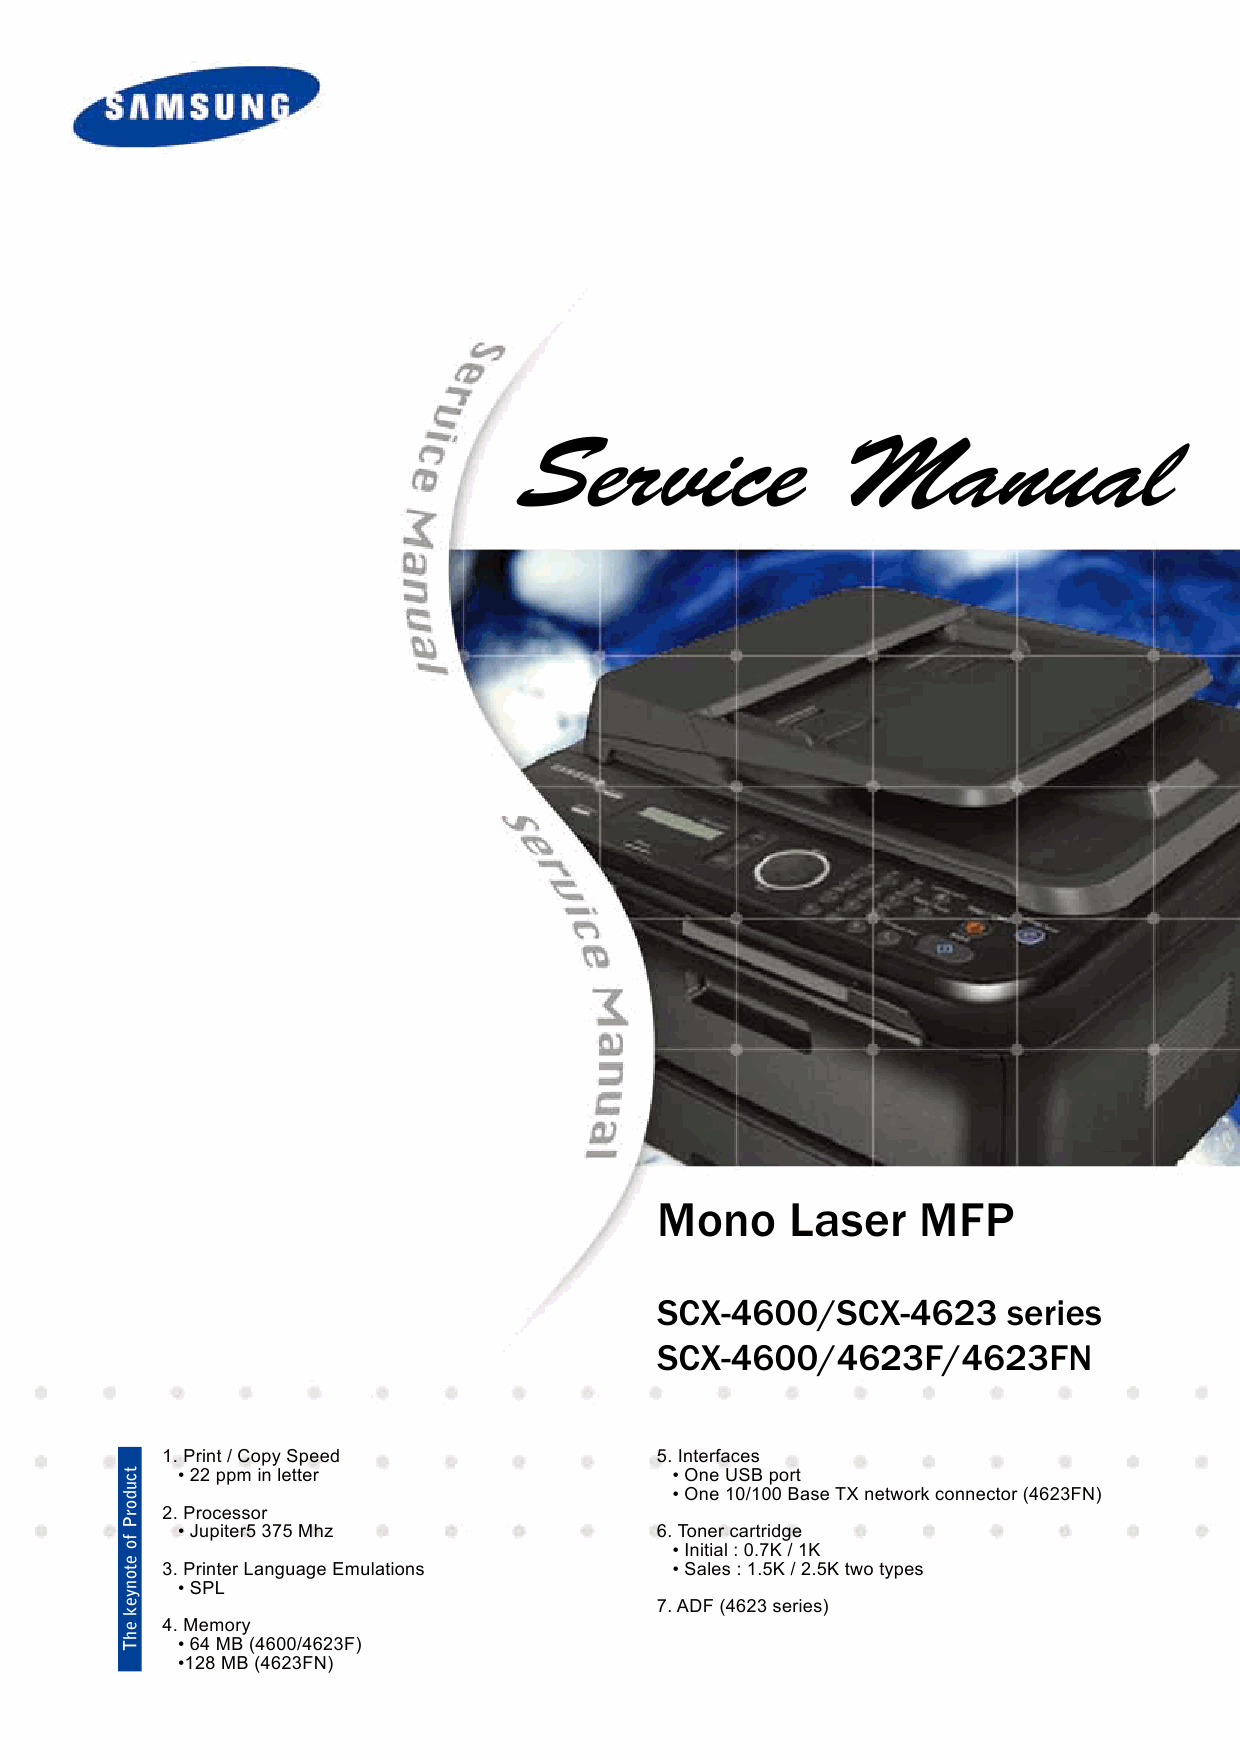 samsung mono laser mfp scx 4600 4623 4623f 4623fn parts and service manual. Black Bedroom Furniture Sets. Home Design Ideas